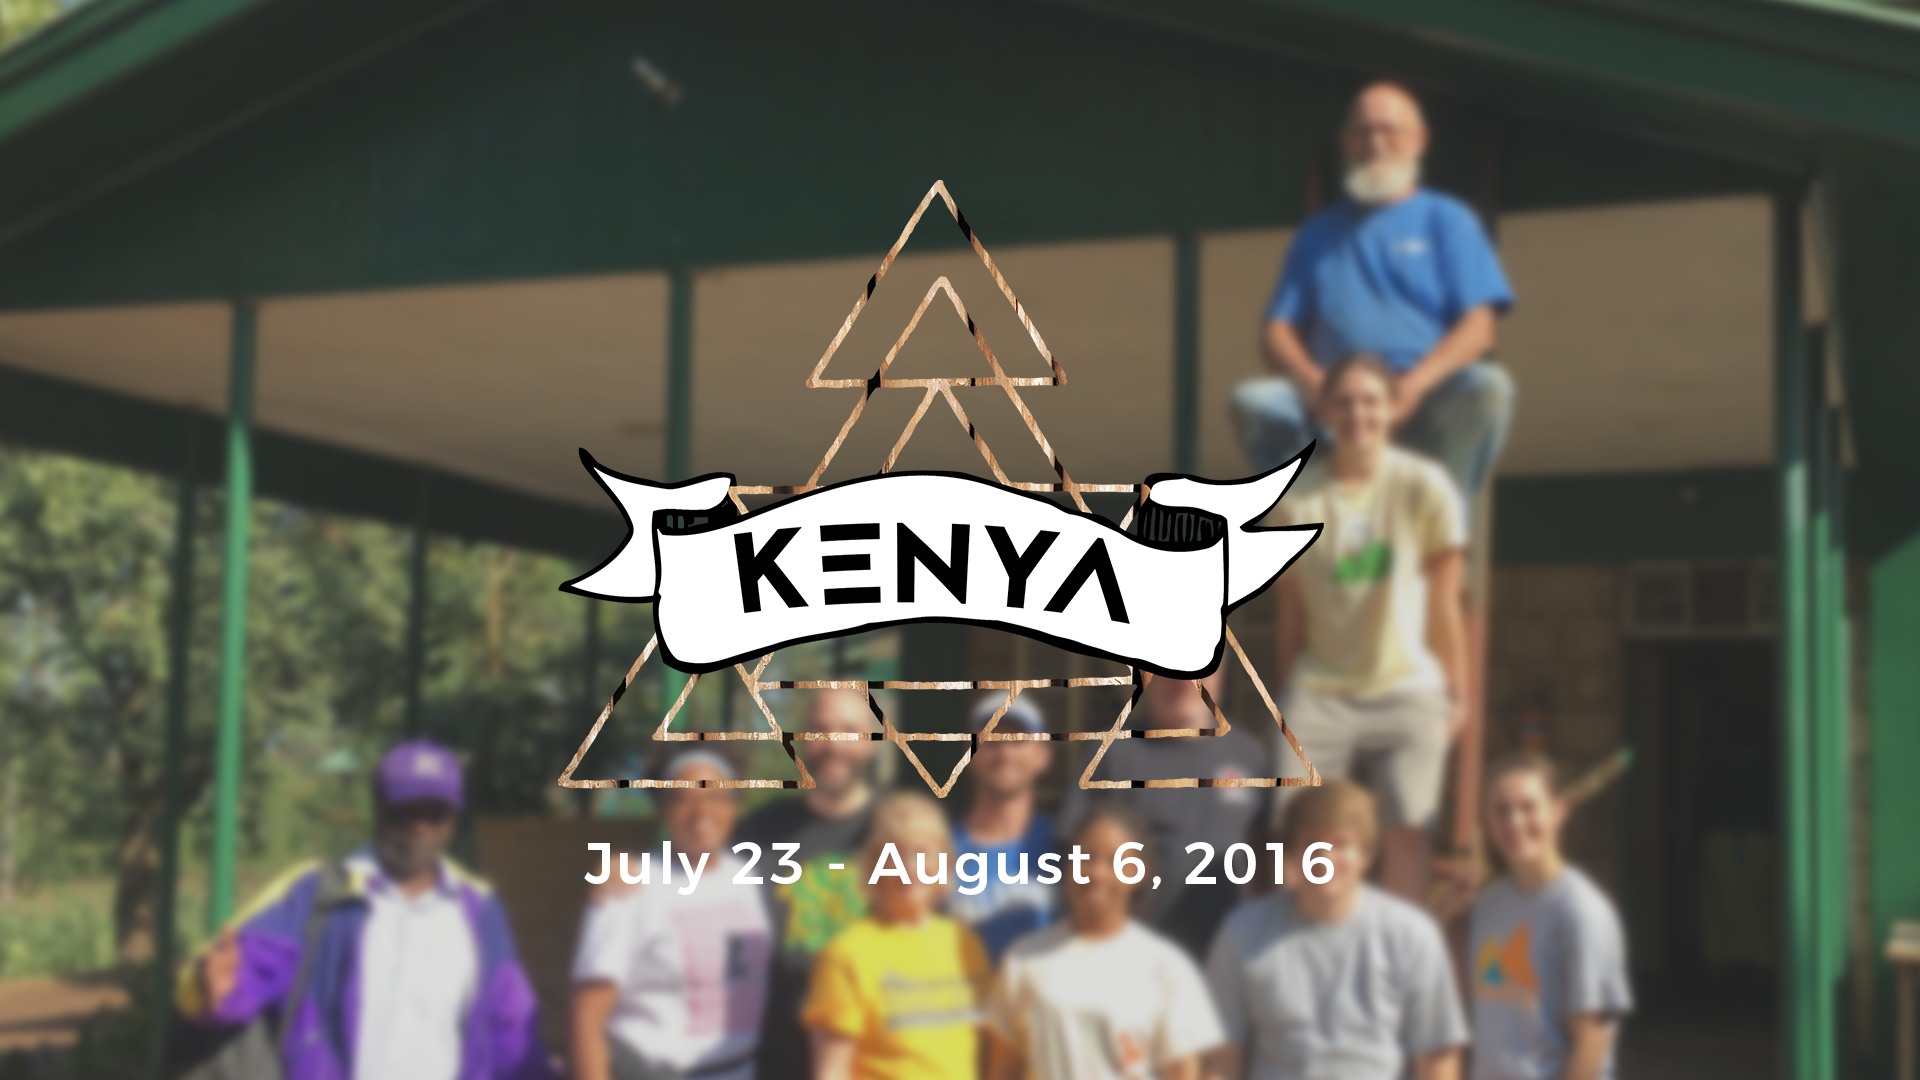 valley view missions kenya 2016